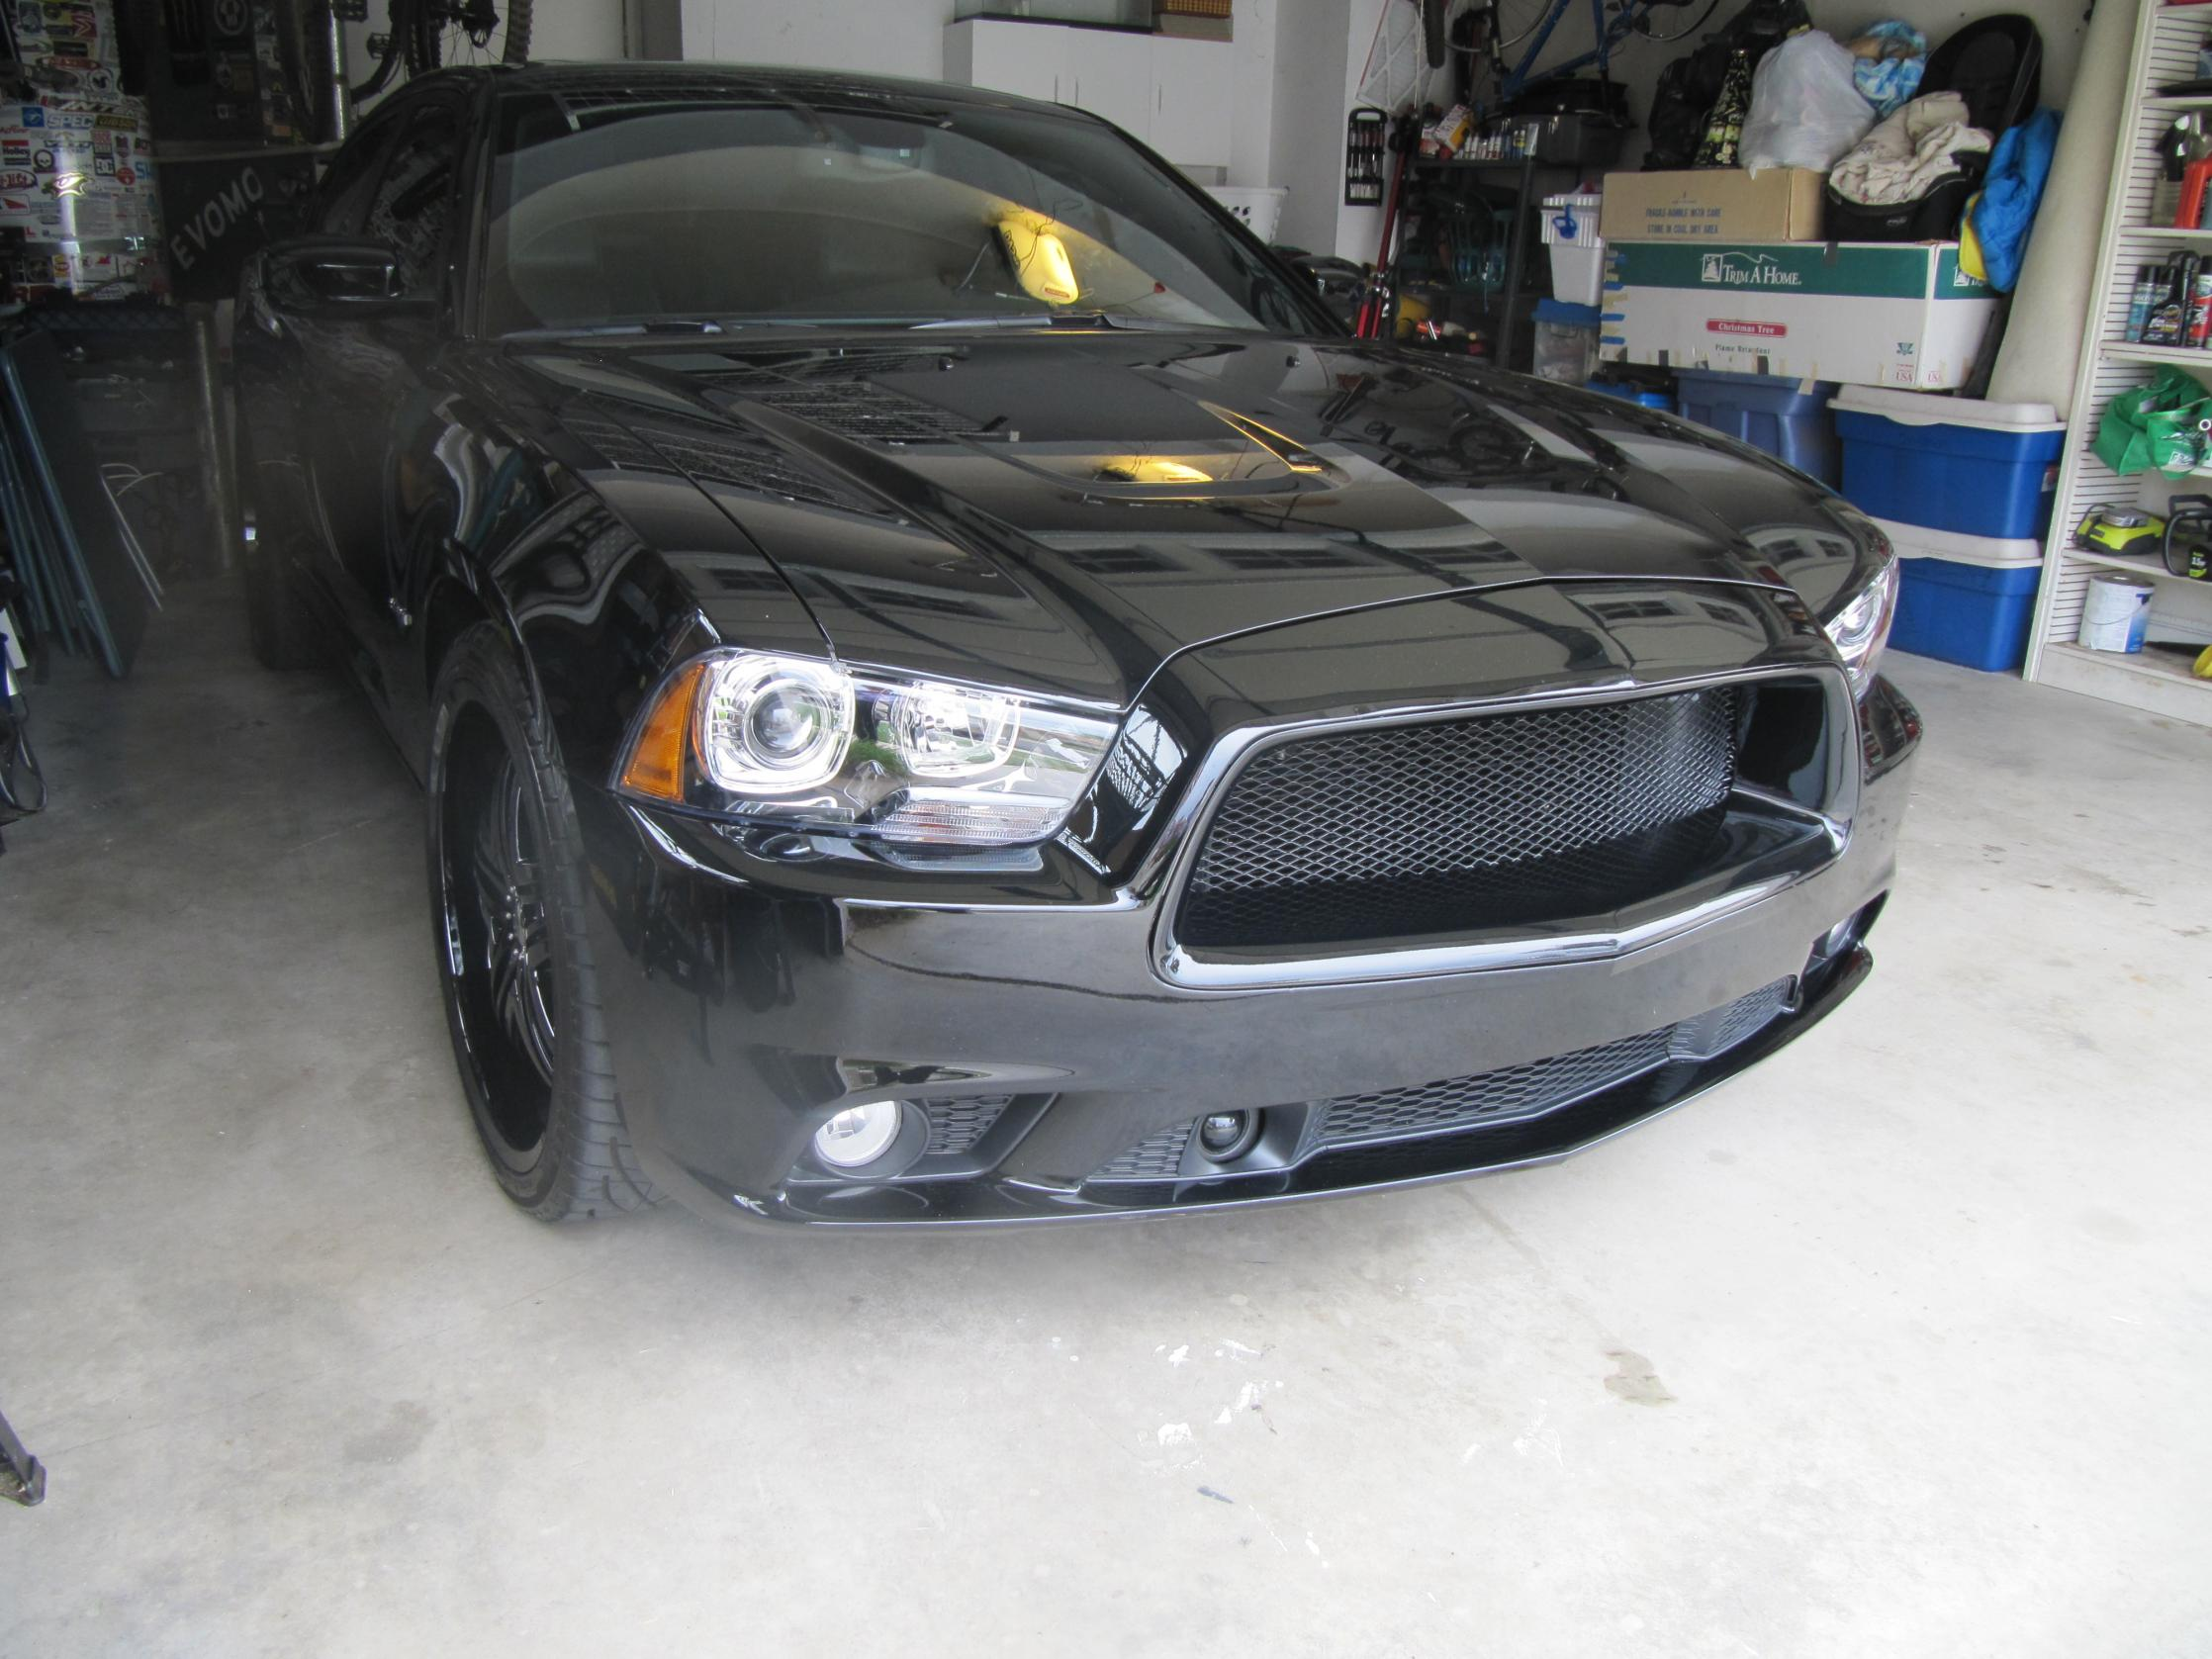 2011 2012 Dodge Charger Official Danko 70 Custom Grille Picture Thread Charger Forums